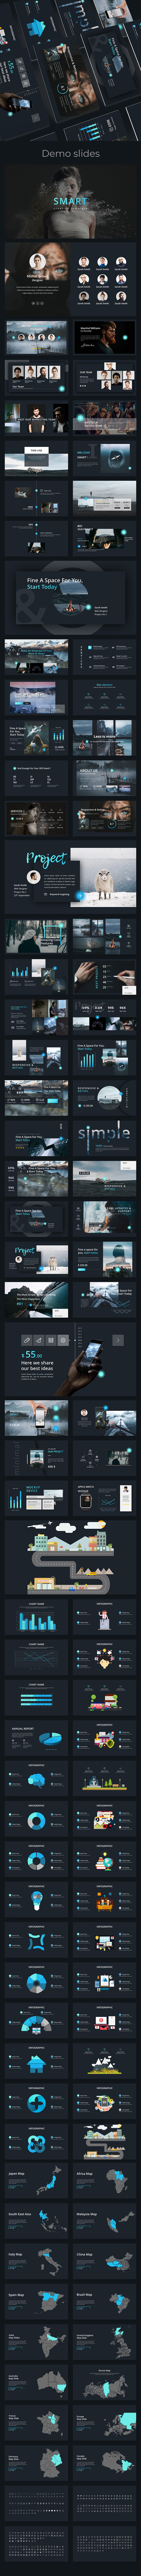 Smart - Creative Powerpoint Template - Creative PowerPoint Templates